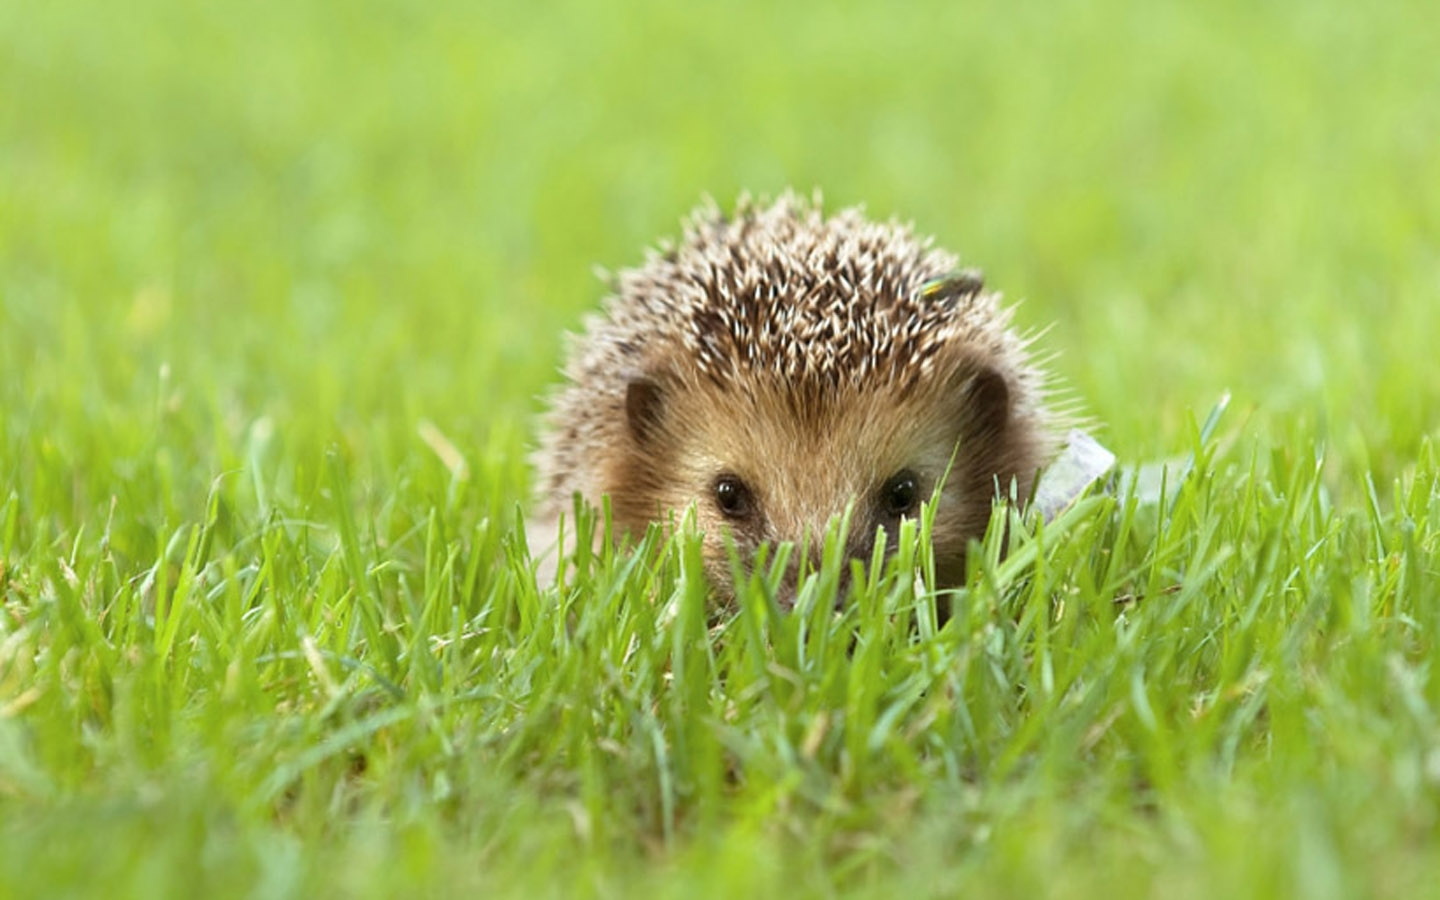 Hedgehog background